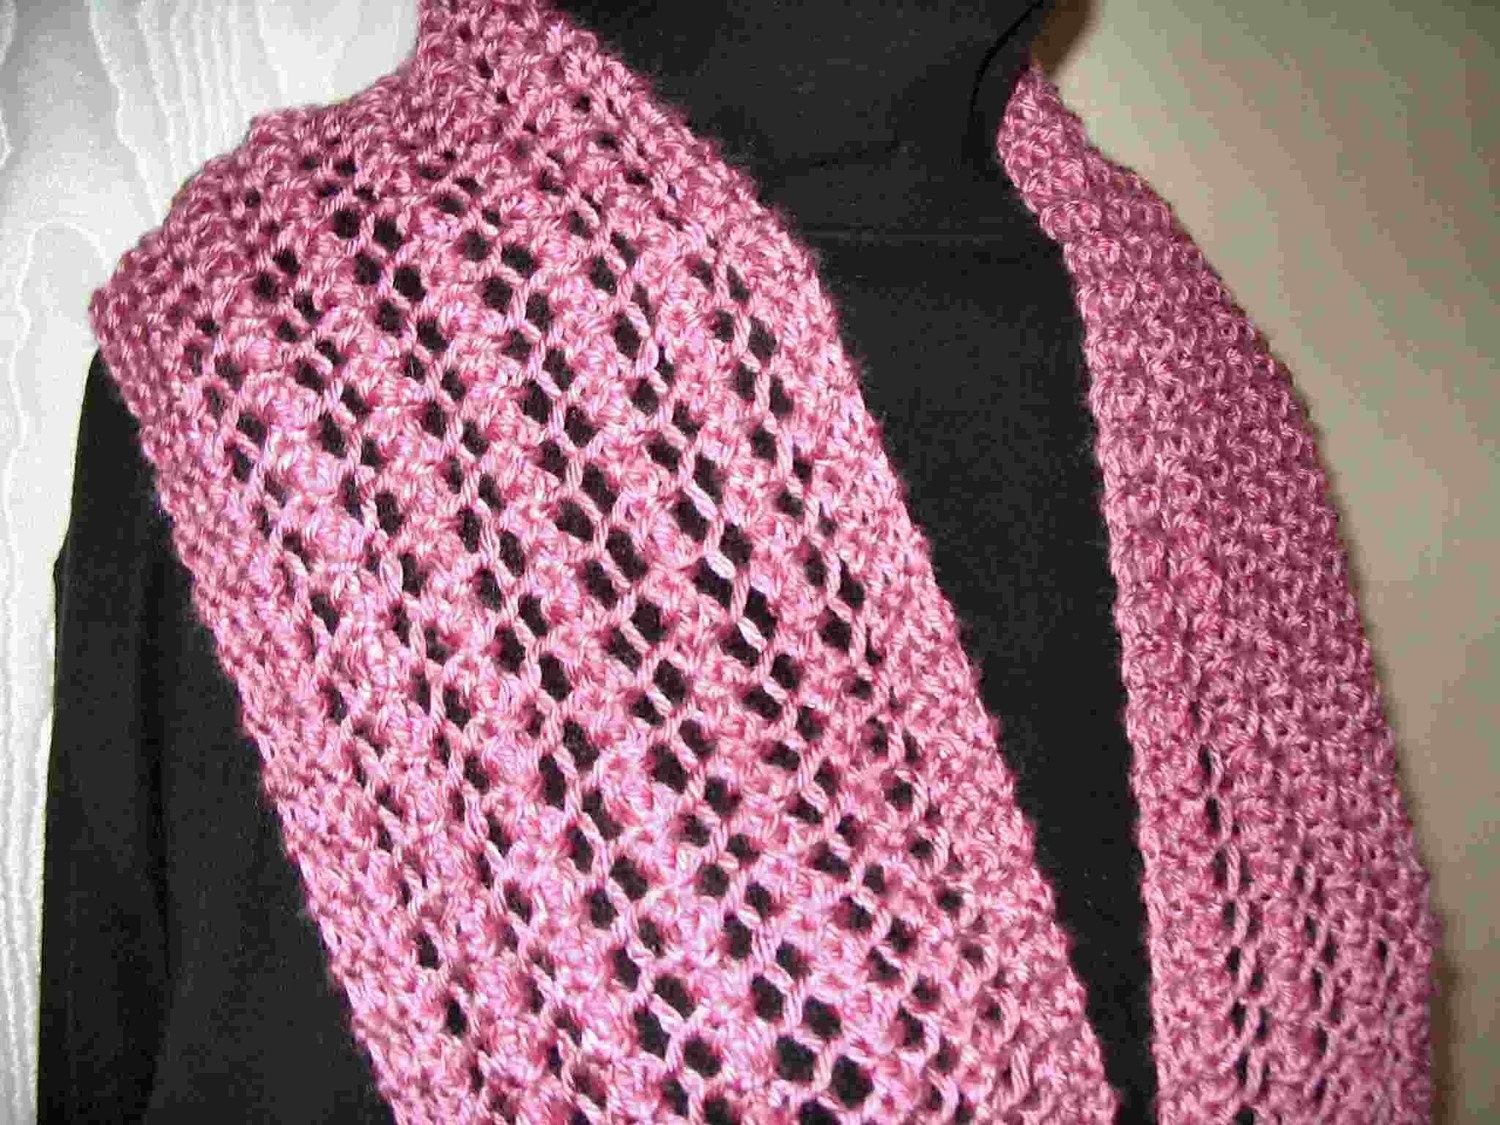 Knitting Pattern For Simple Scarf : Knitted lace scarf Four patterns in One Easy to knit one row